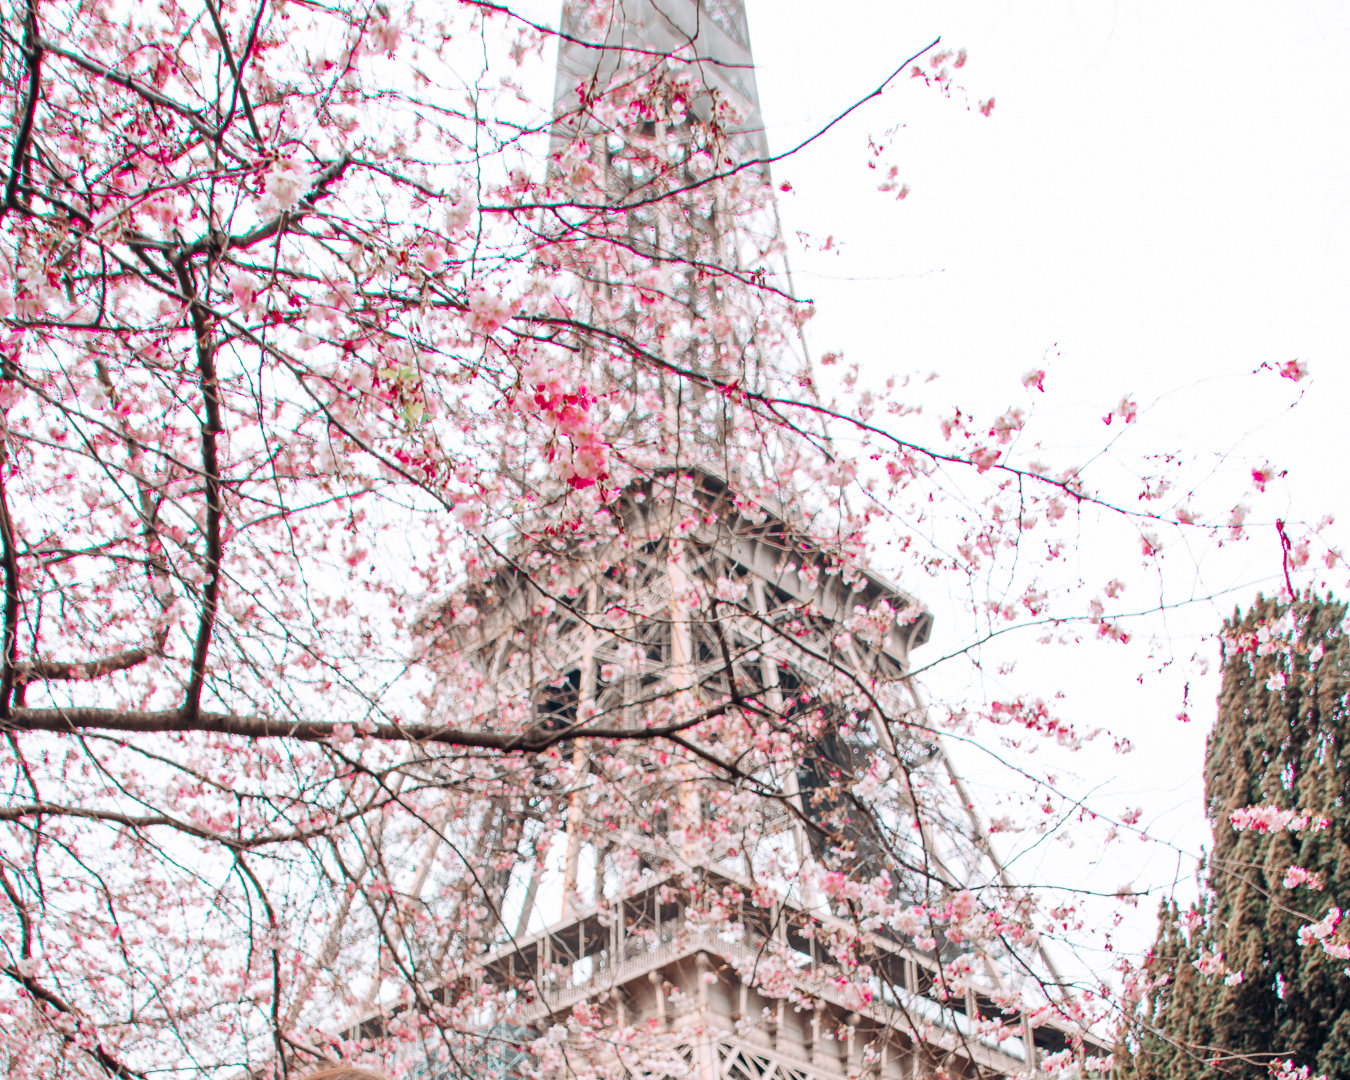 Blossoms and the Eiffel Tower